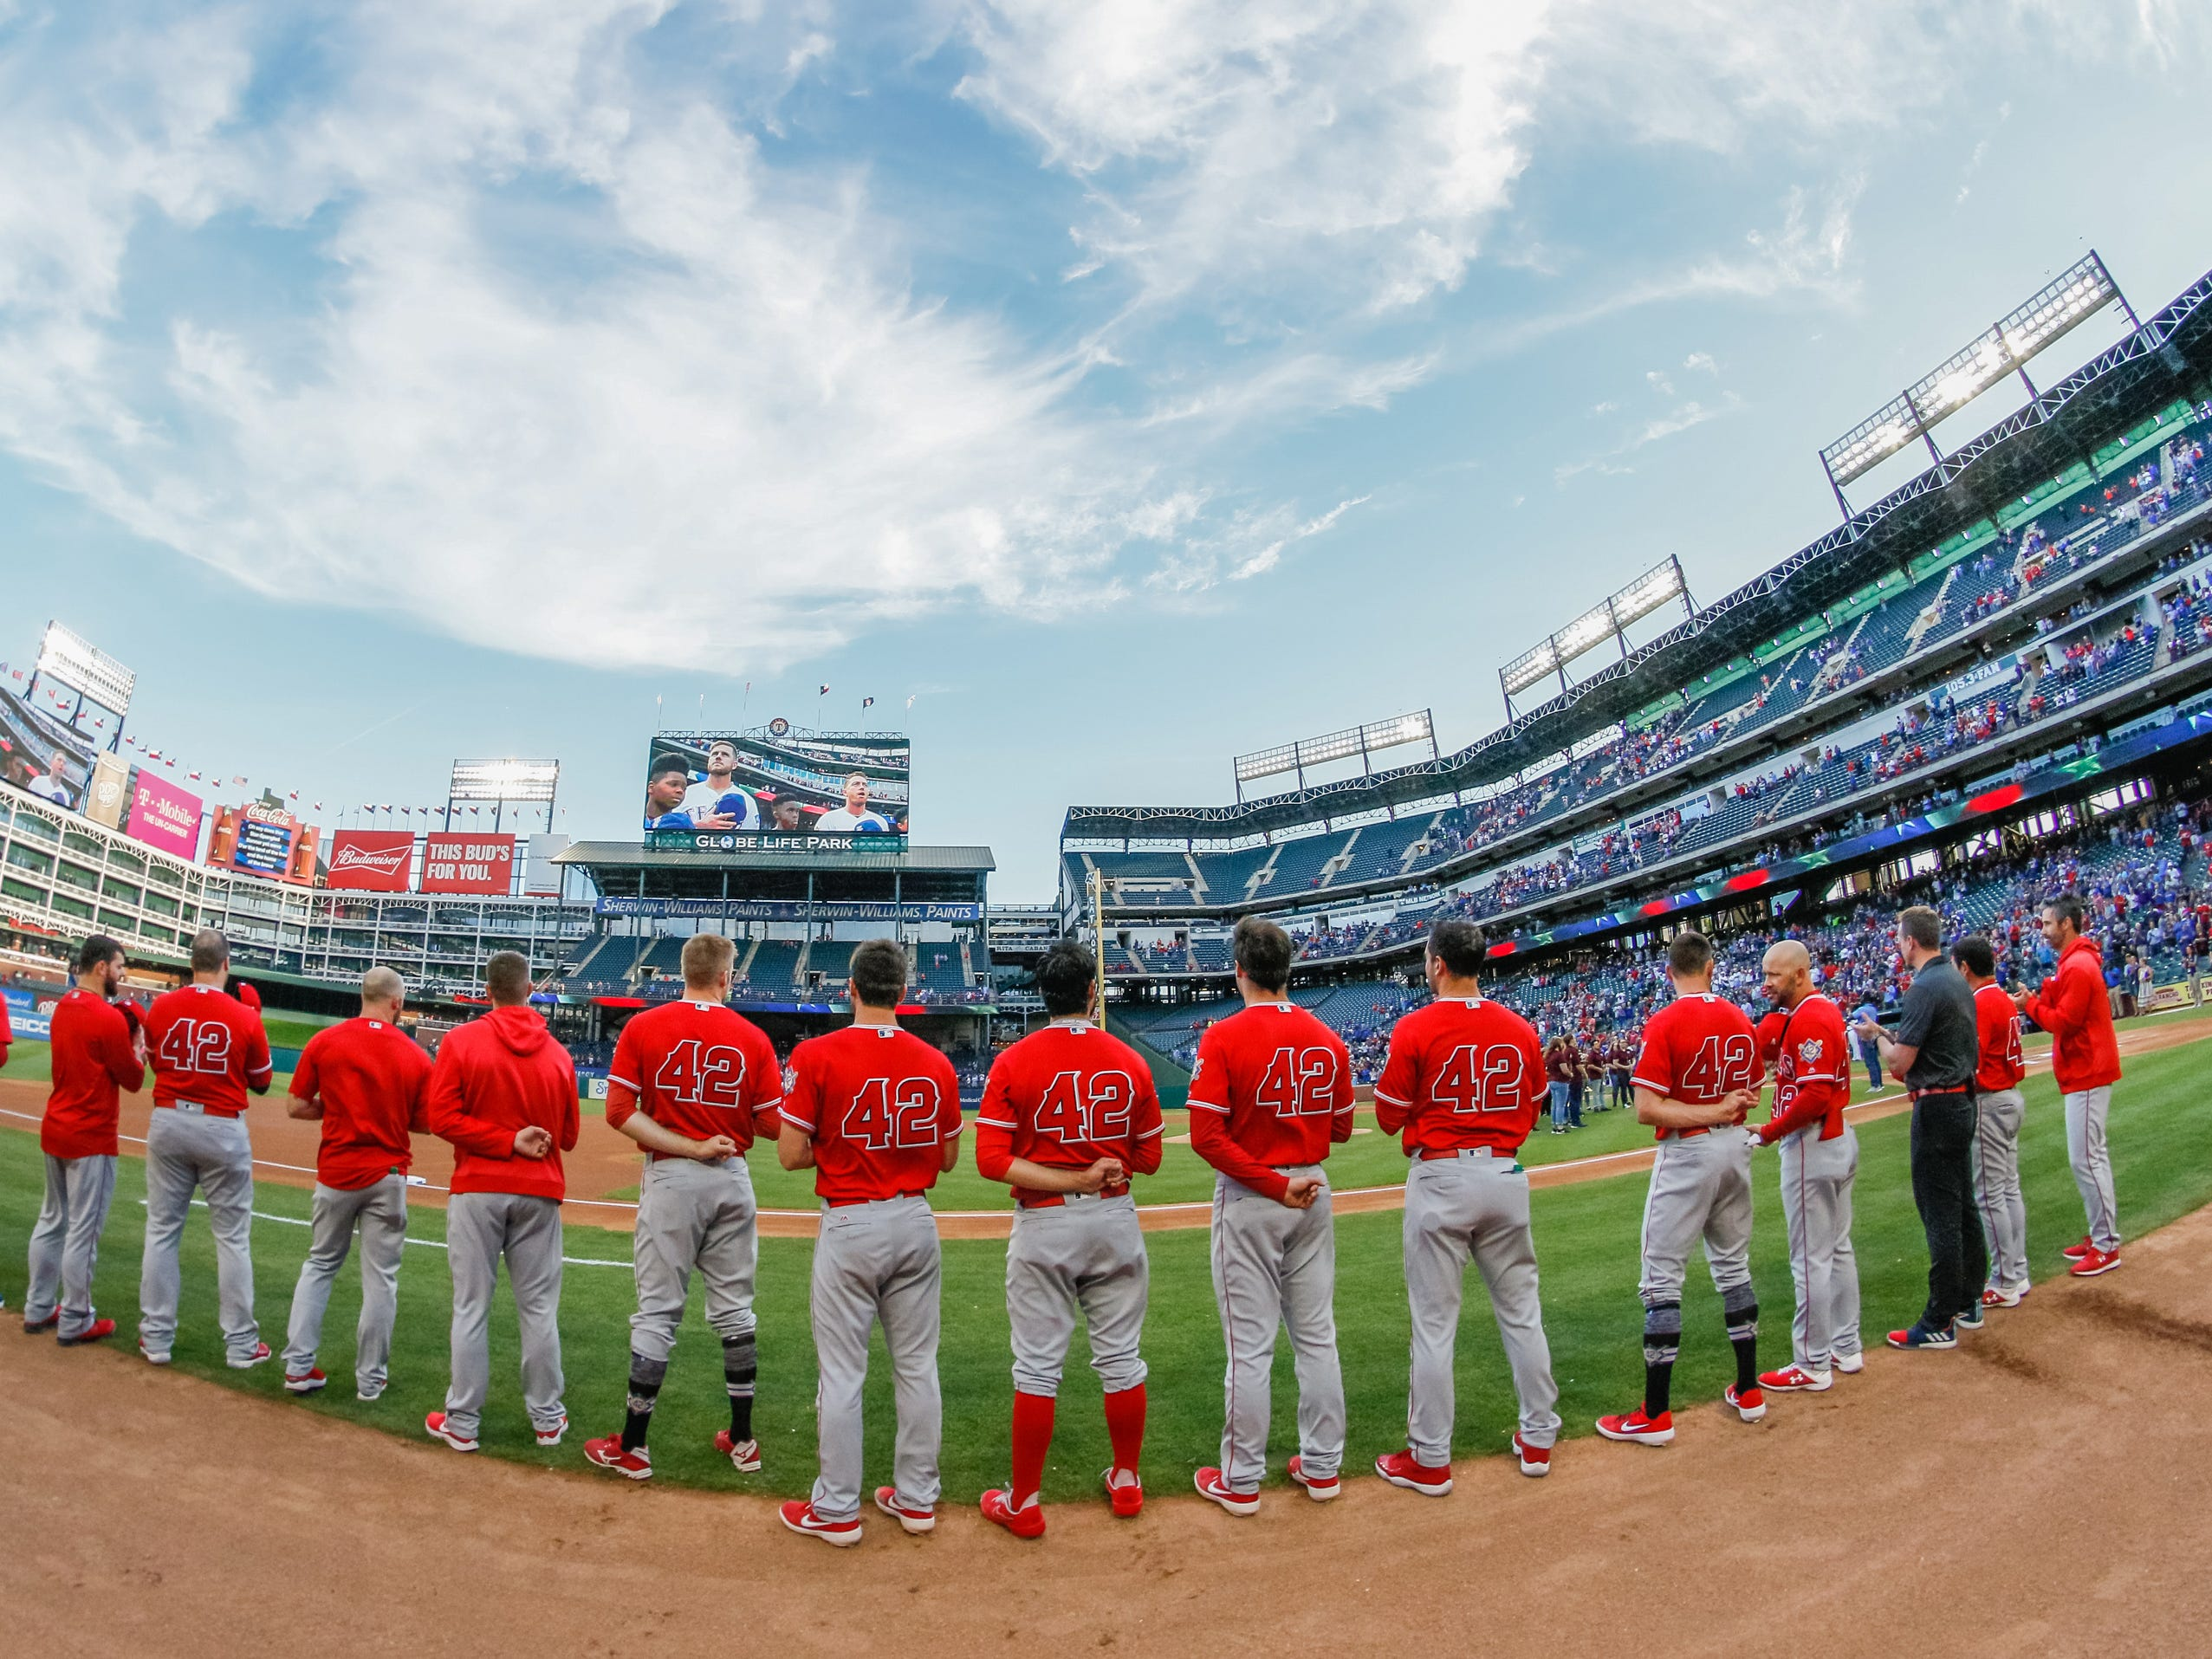 The Angels players stand along the third base line during the national anthem all wearing the No. 42 for Jackie Robinson.